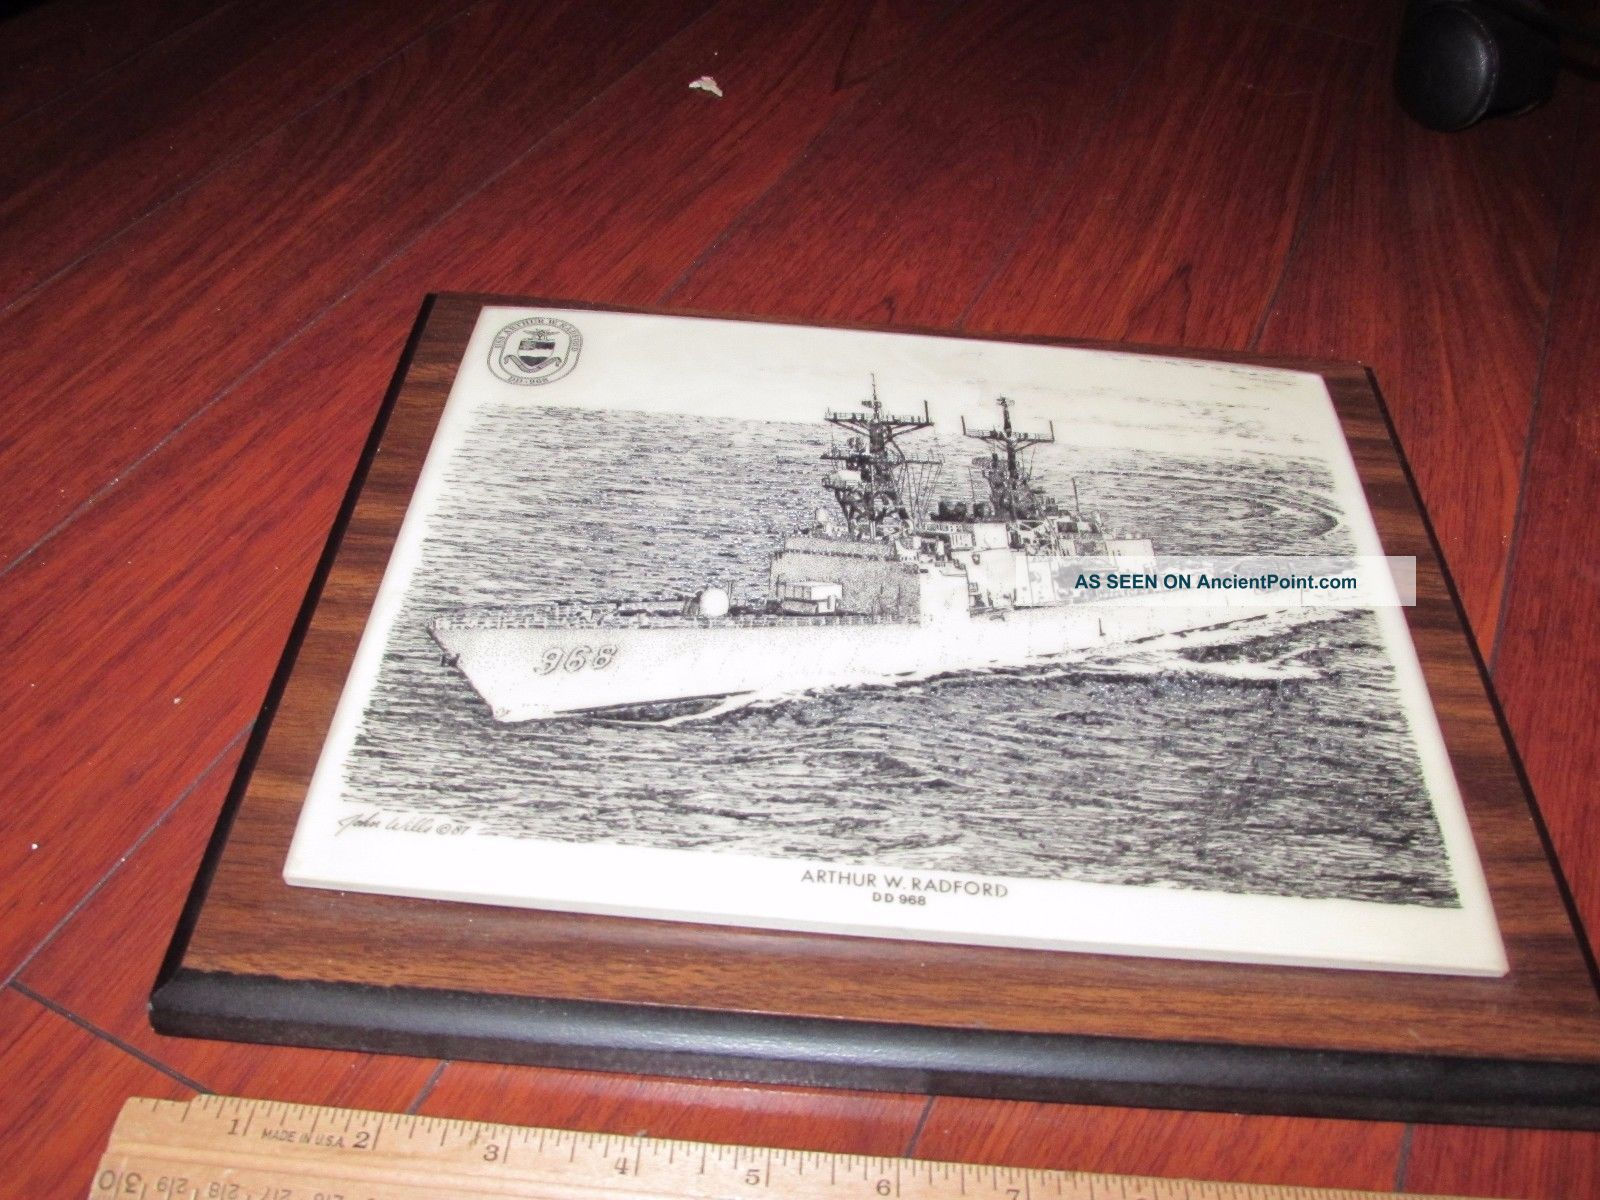 Uss Arthur W.  Radford Dd - 968 Destroyer Signed Art Plaque Marble On Wood Look Plaques & Signs photo